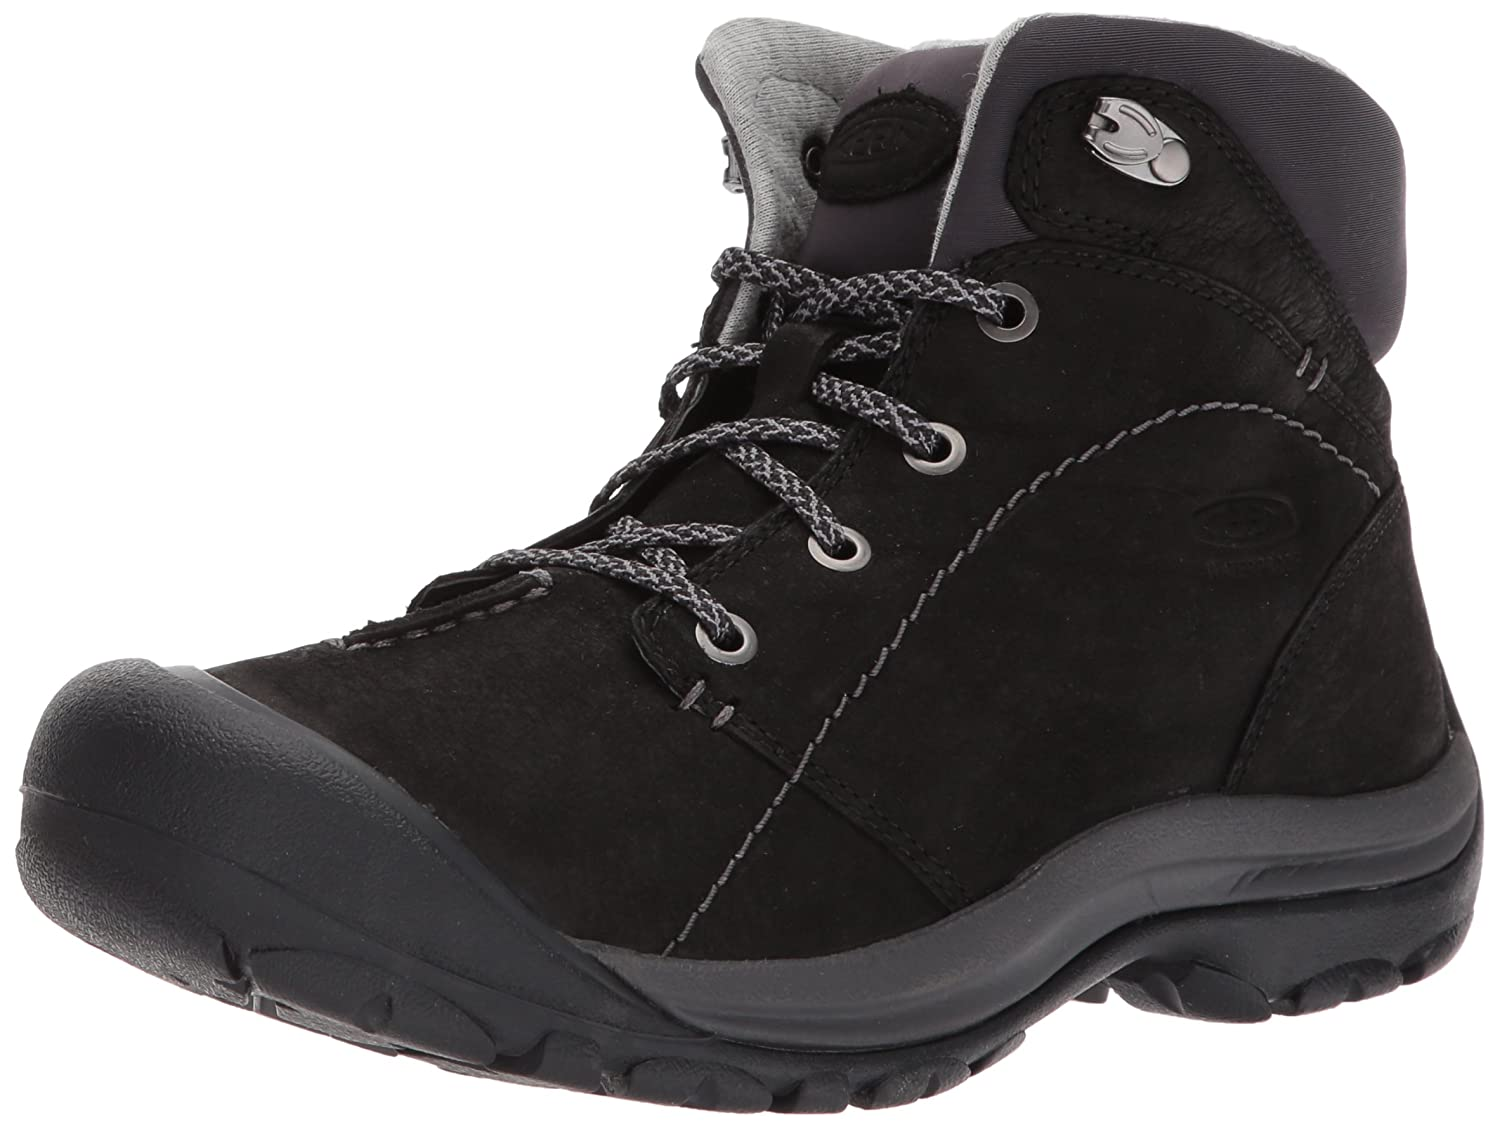 KEEN Women's Kaci Winter Mid Wp-w Rain Boot B01N2I9RZJ 9.5 B(M) US|Black/Magnet